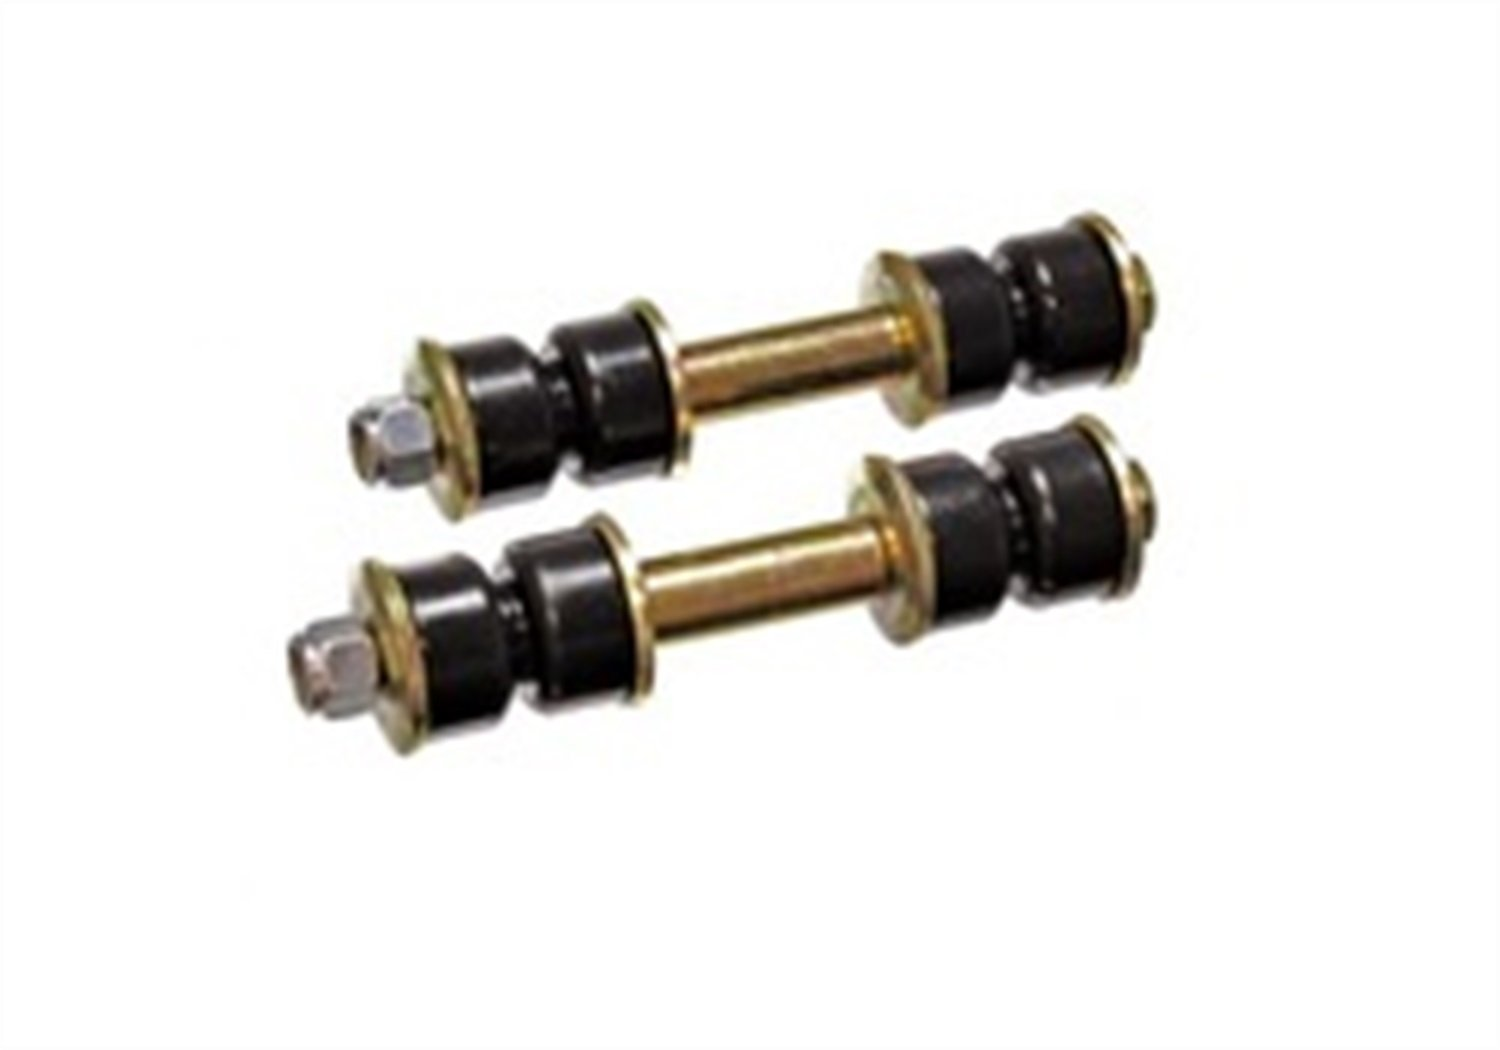 Energy Suspension 9.8120G END LINK SET WITH HARDWARE by Energy Suspension